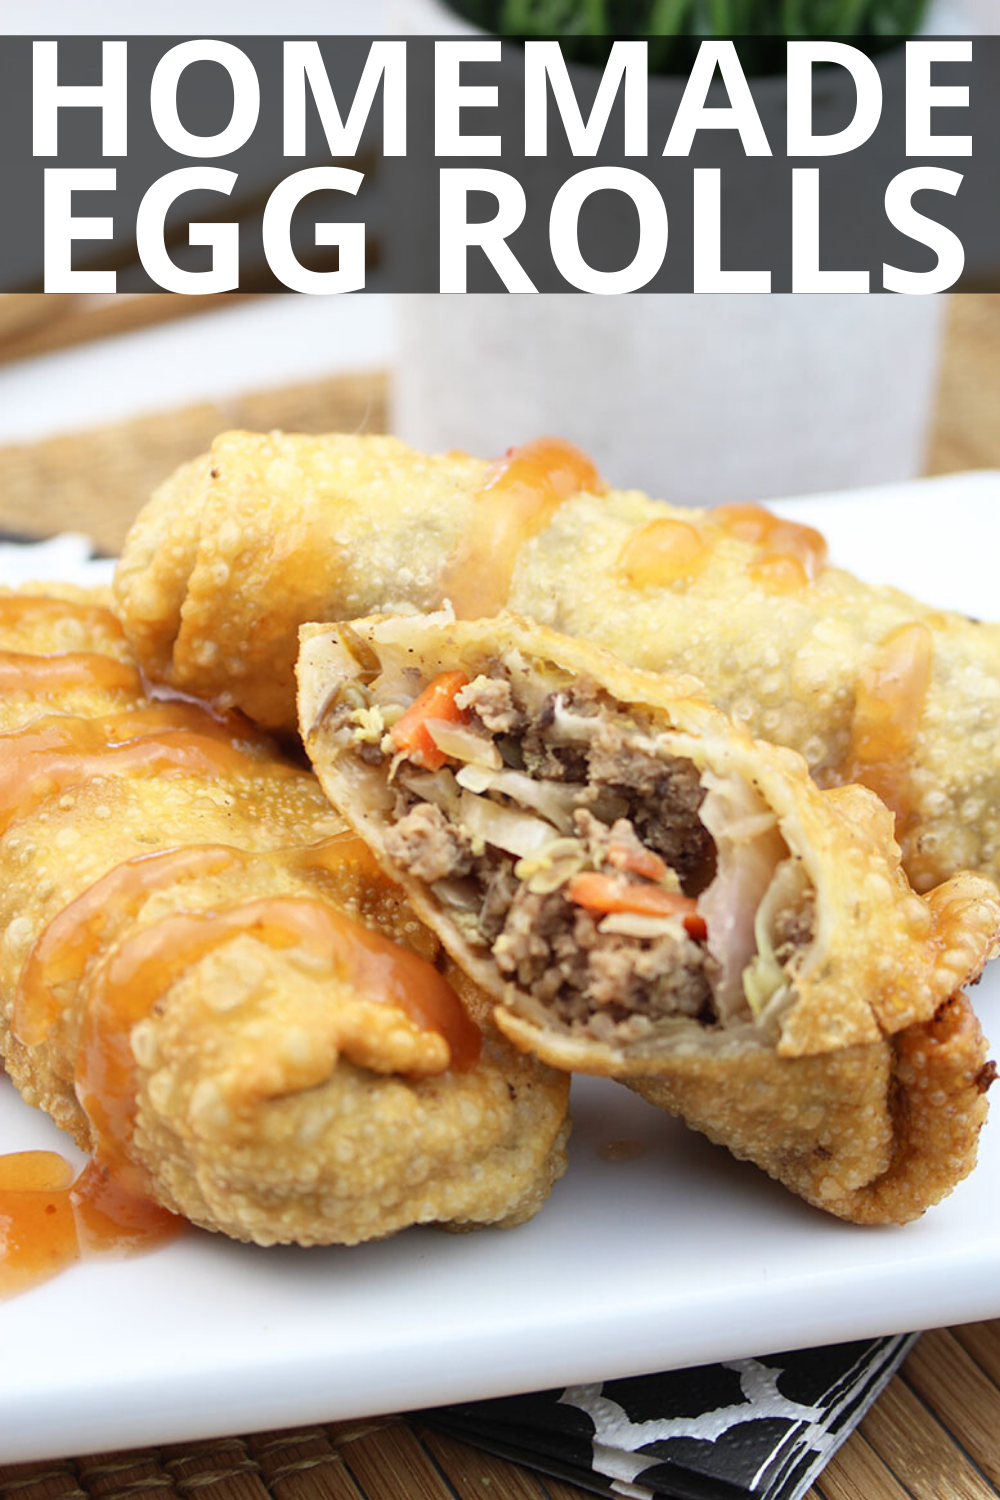 Homemade Egg Rolls Six Time Mommy And Counting In 2020 Homemade Egg Rolls Homemade Chinese Food Easy Chinese Recipes